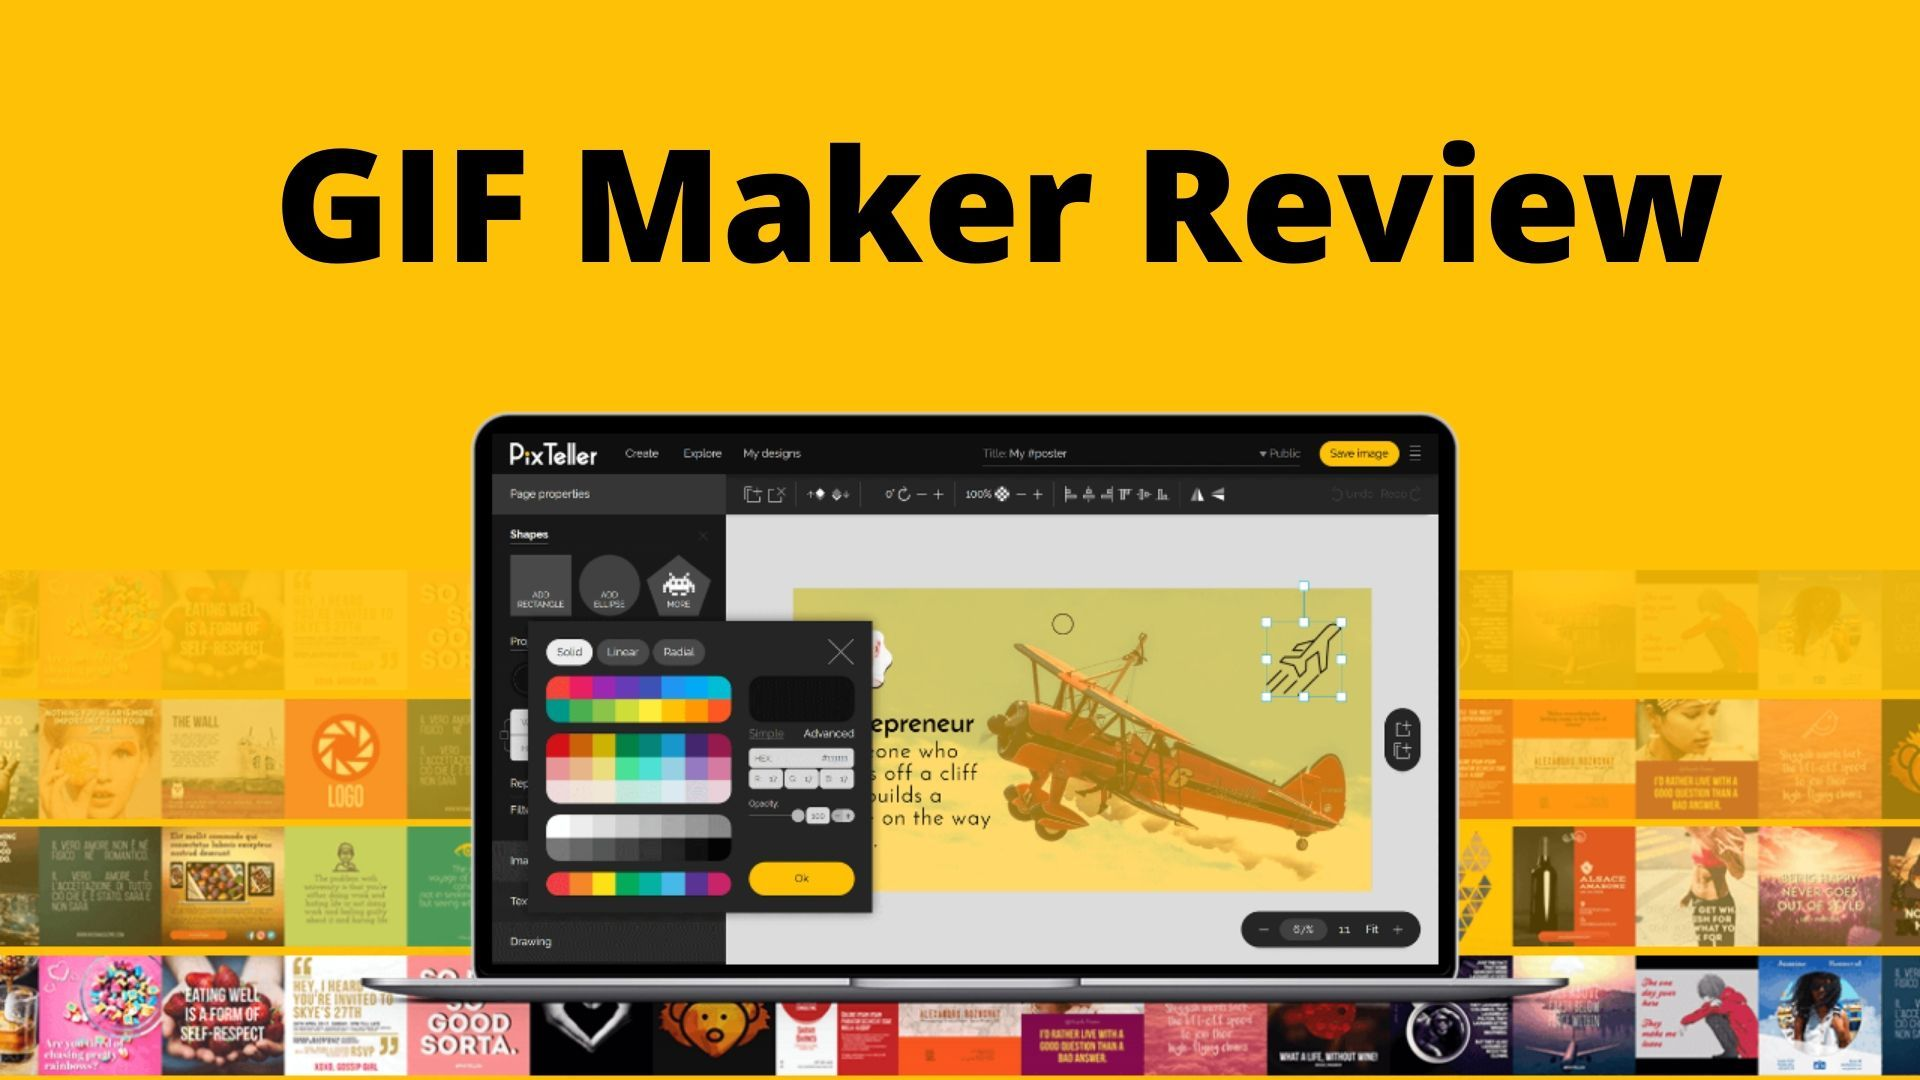 GIF Maker Review Video maker, Best ads, Video editing